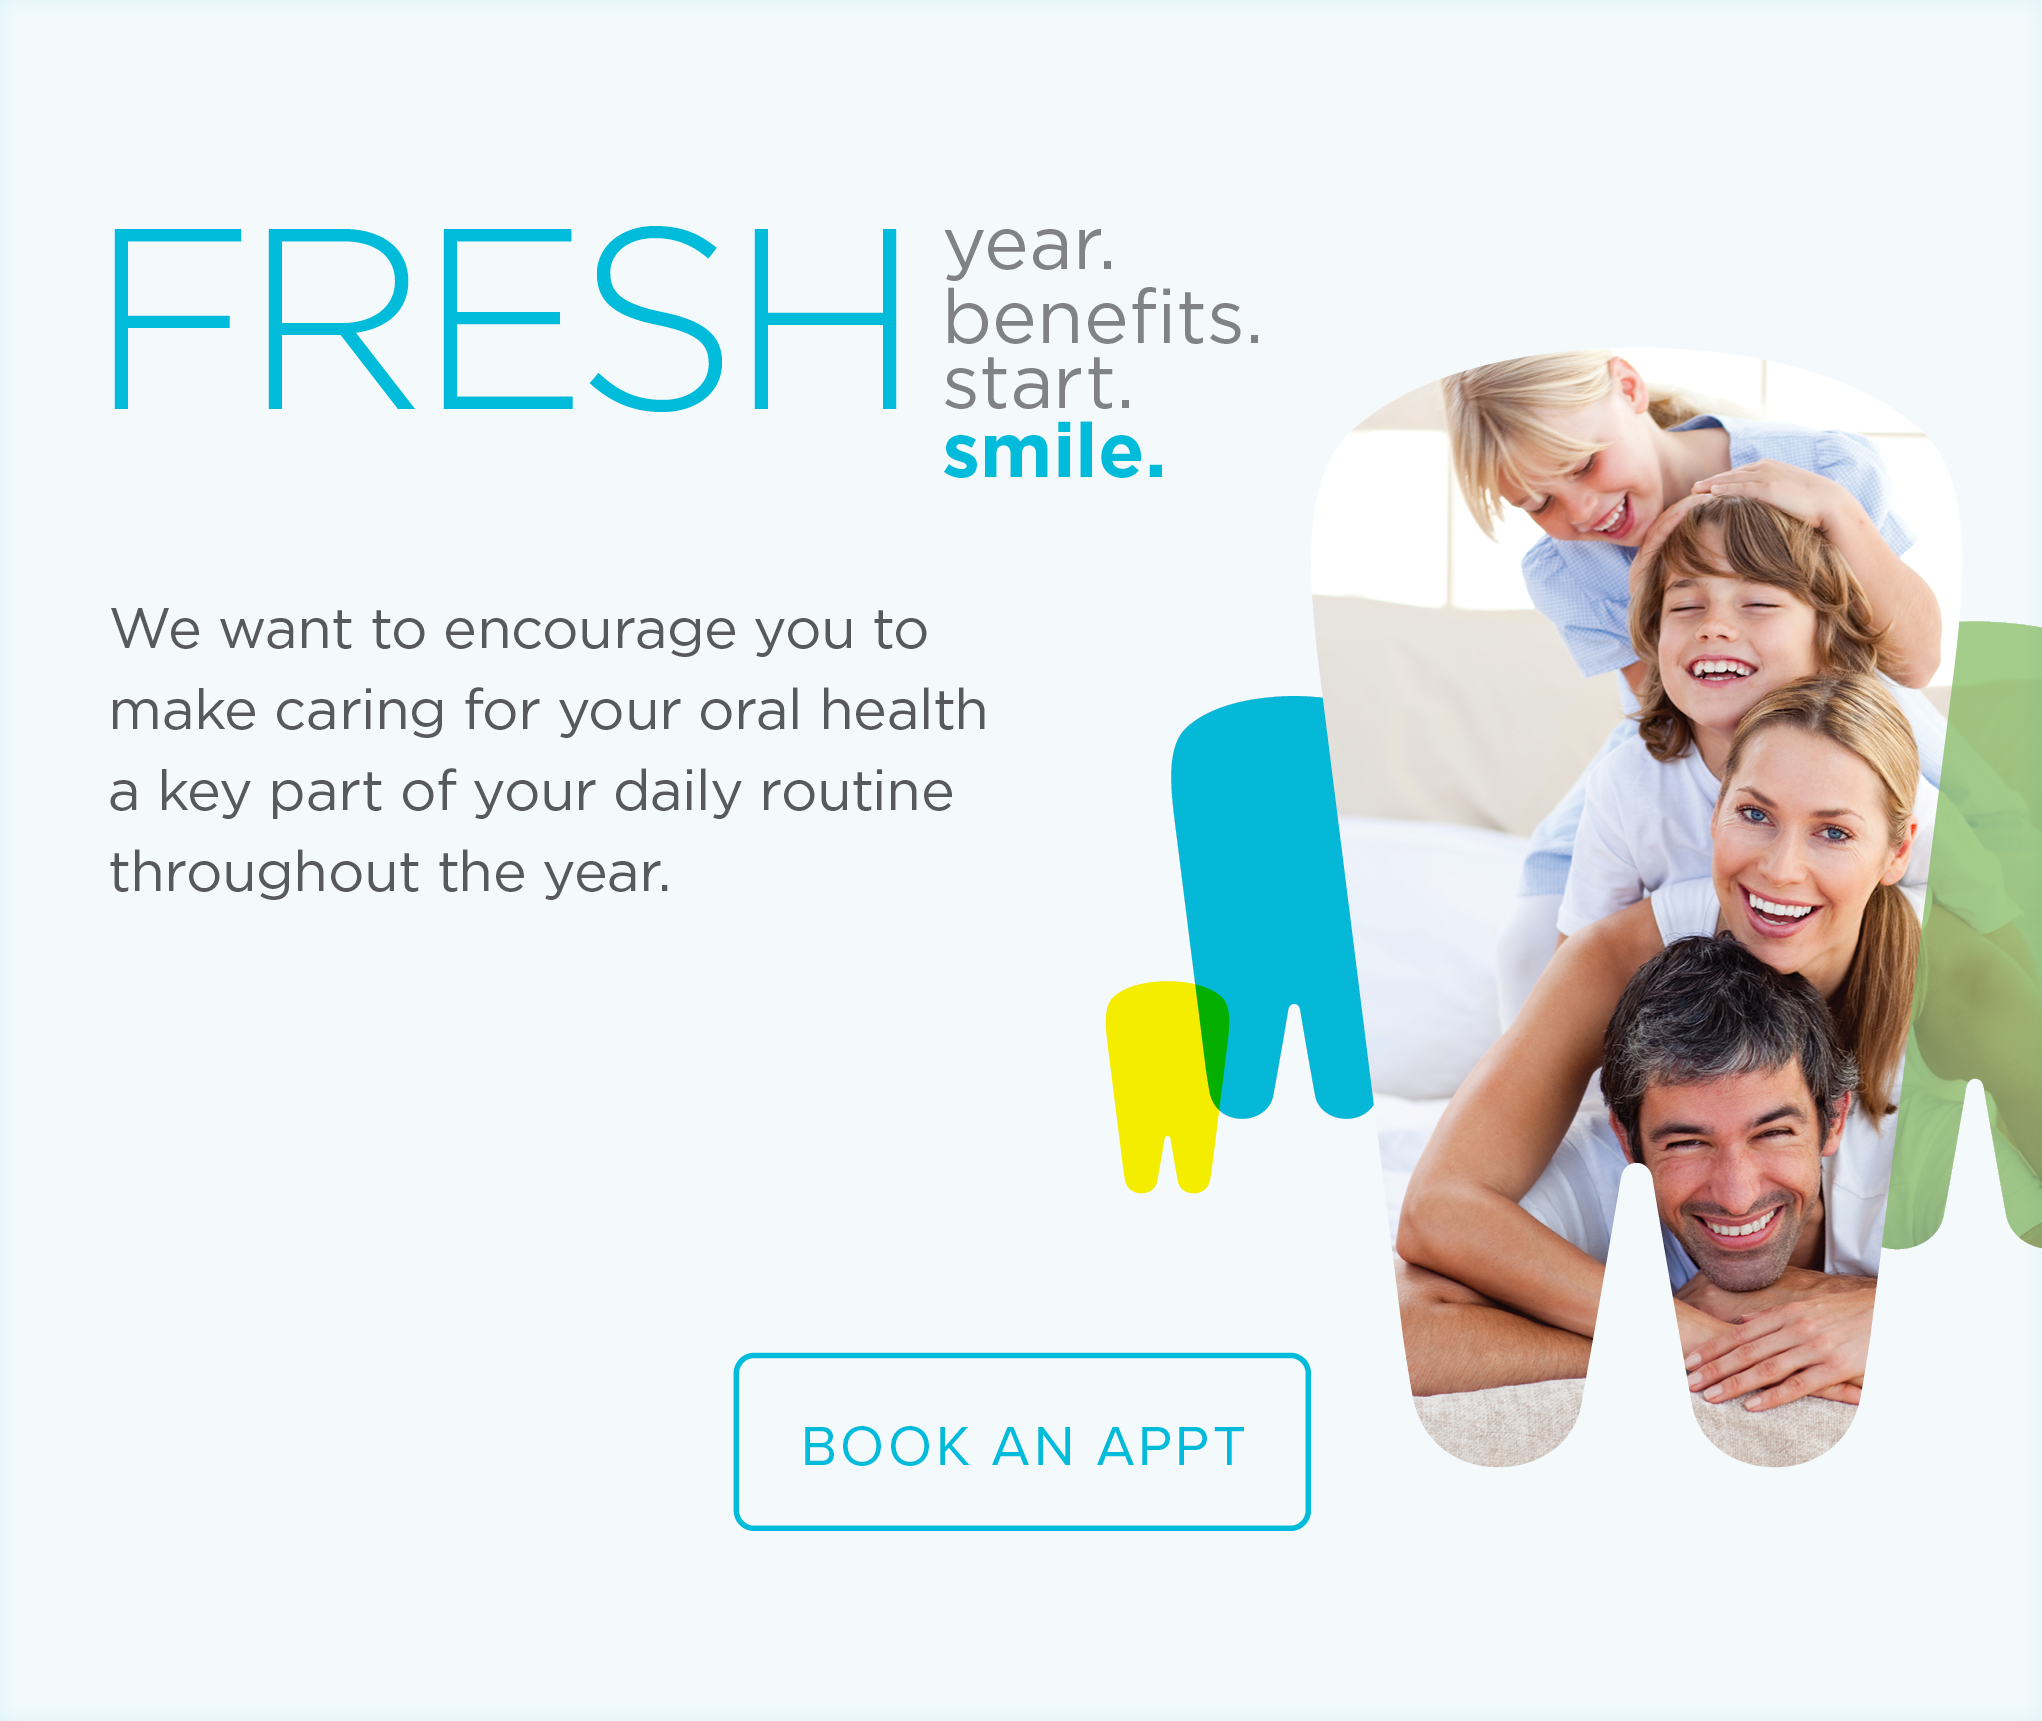 Edgewater Modern Dentistry - Make the Most of Your Benefits